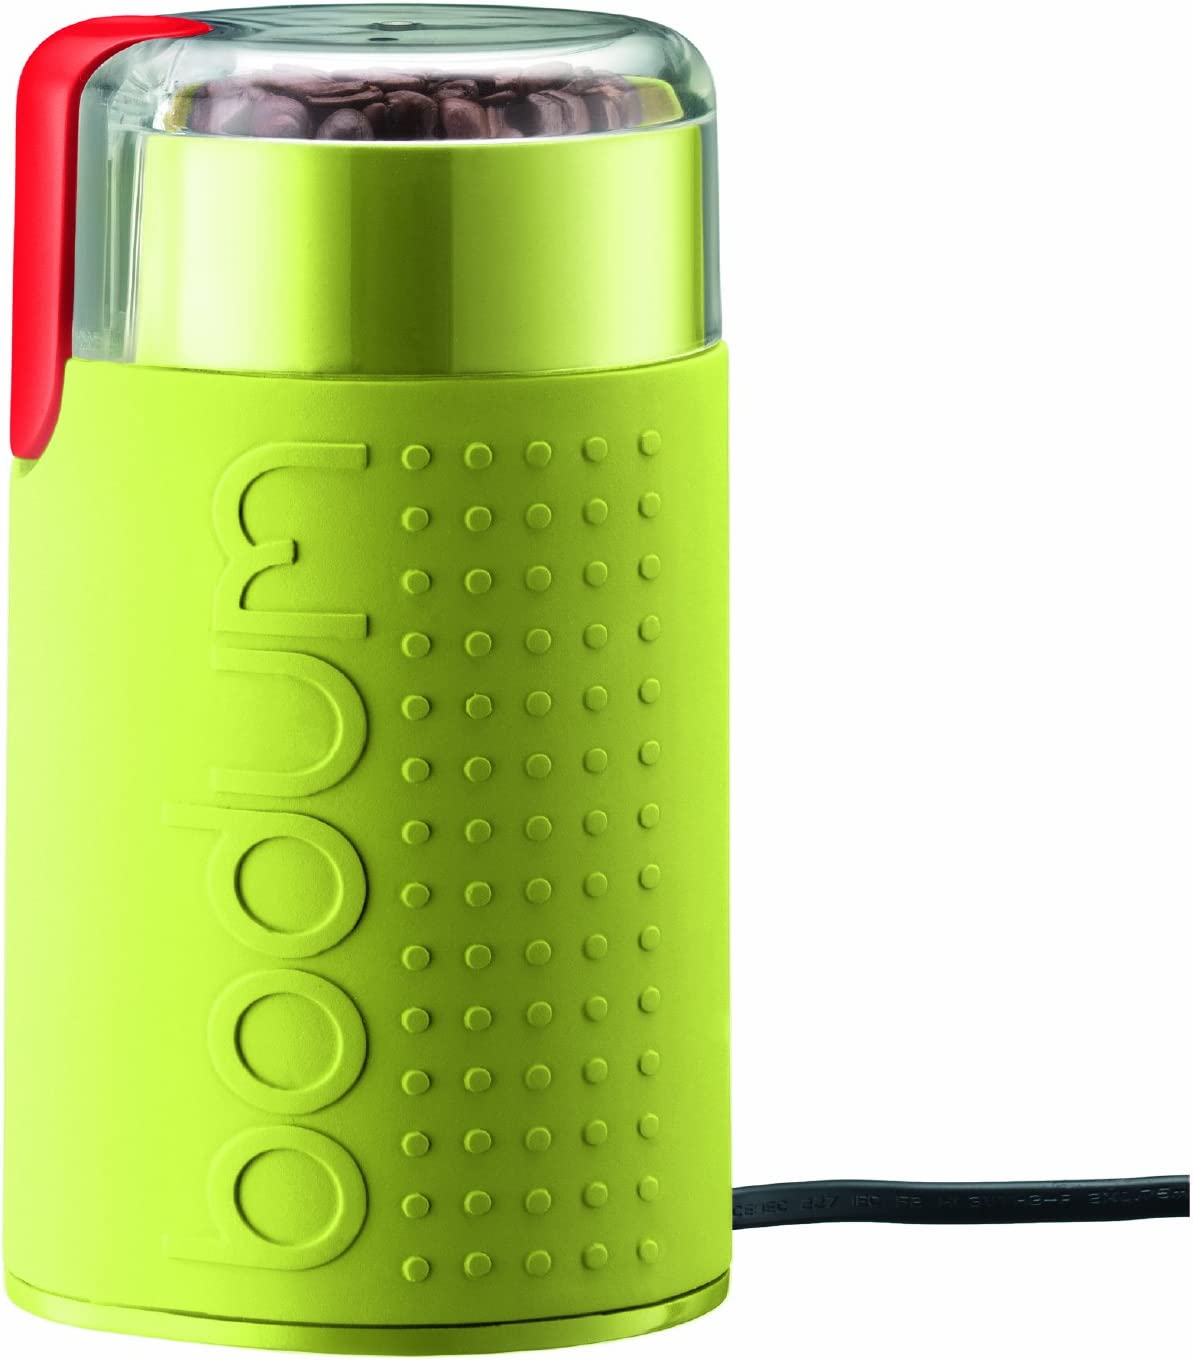 Bodum Bistro Electric Coffee Grinder Holds 60 G Of Beans Lime Green